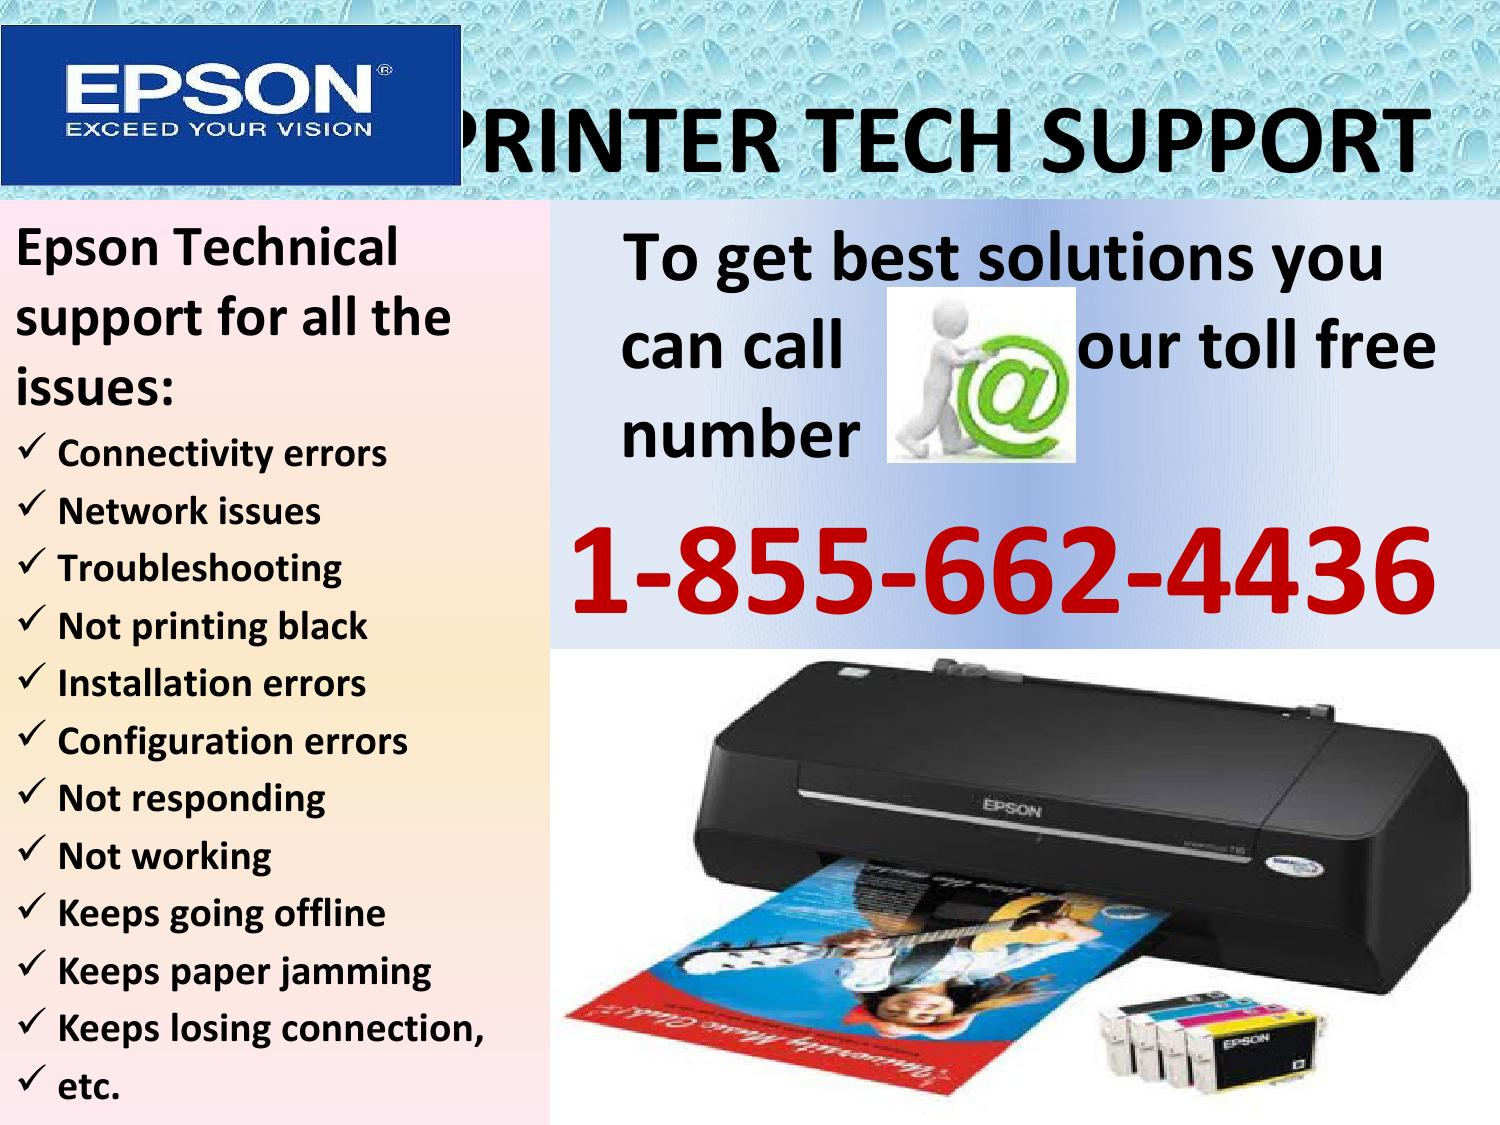 Get epson printer technical 1 855 662 4436 support phone number by get epson printer technical 1 855 662 4436 support phone number by printer tech support issuu biocorpaavc Image collections